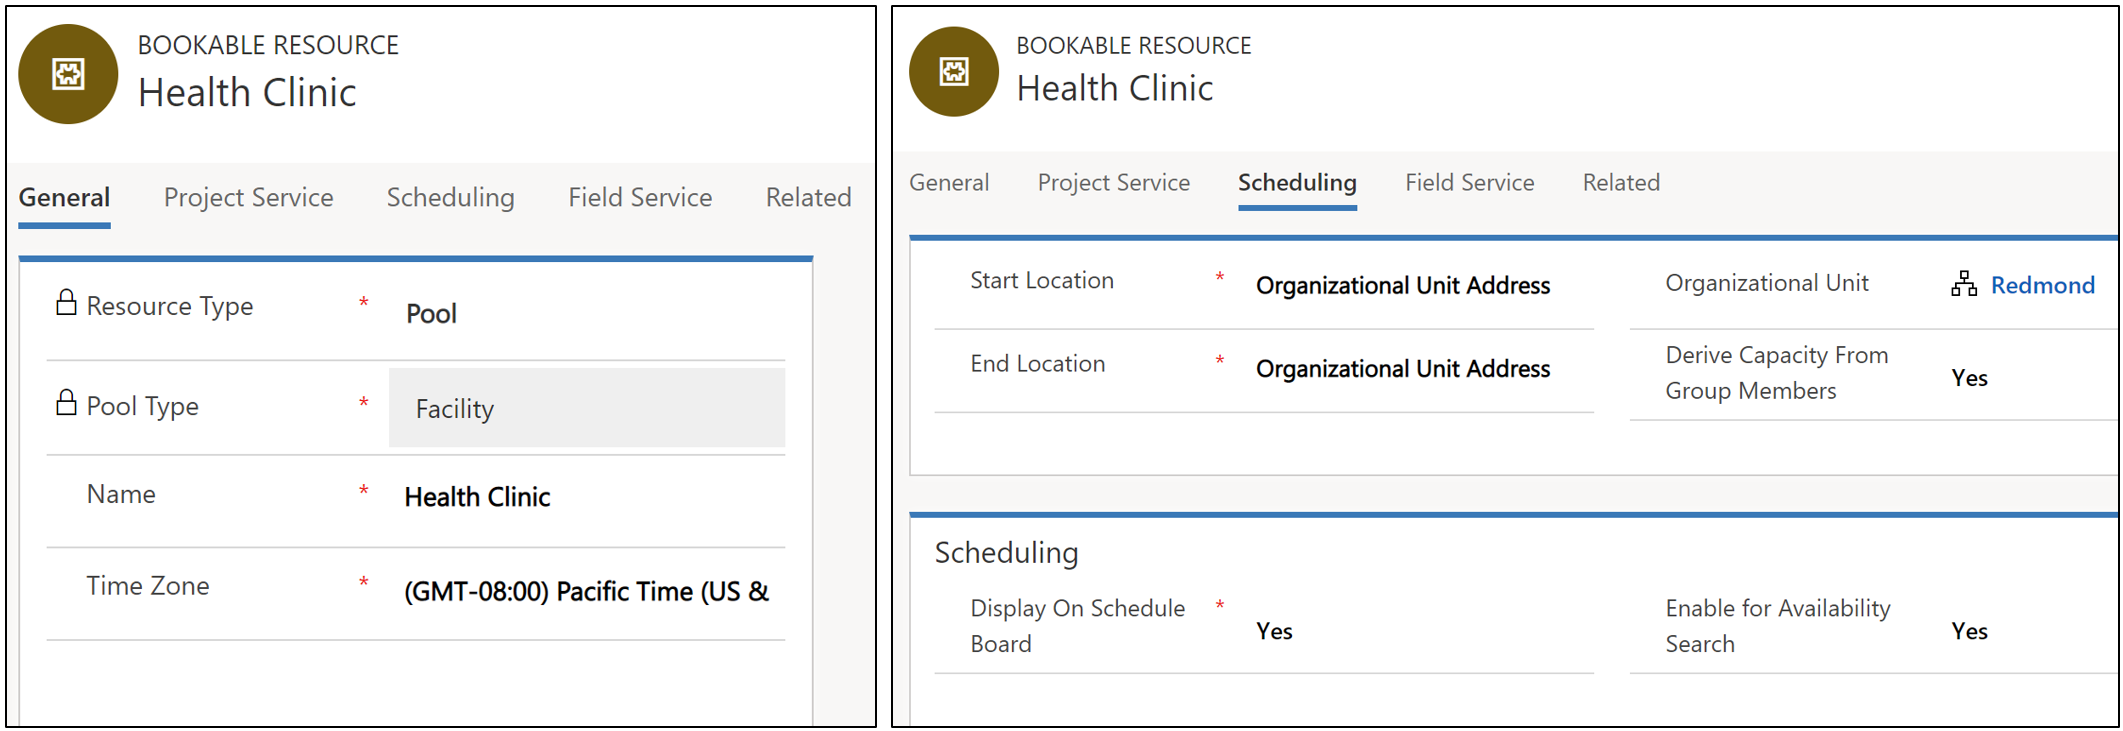 Screenshot of creating a new facility pool resource. This is a pool type resource with pool type of facility